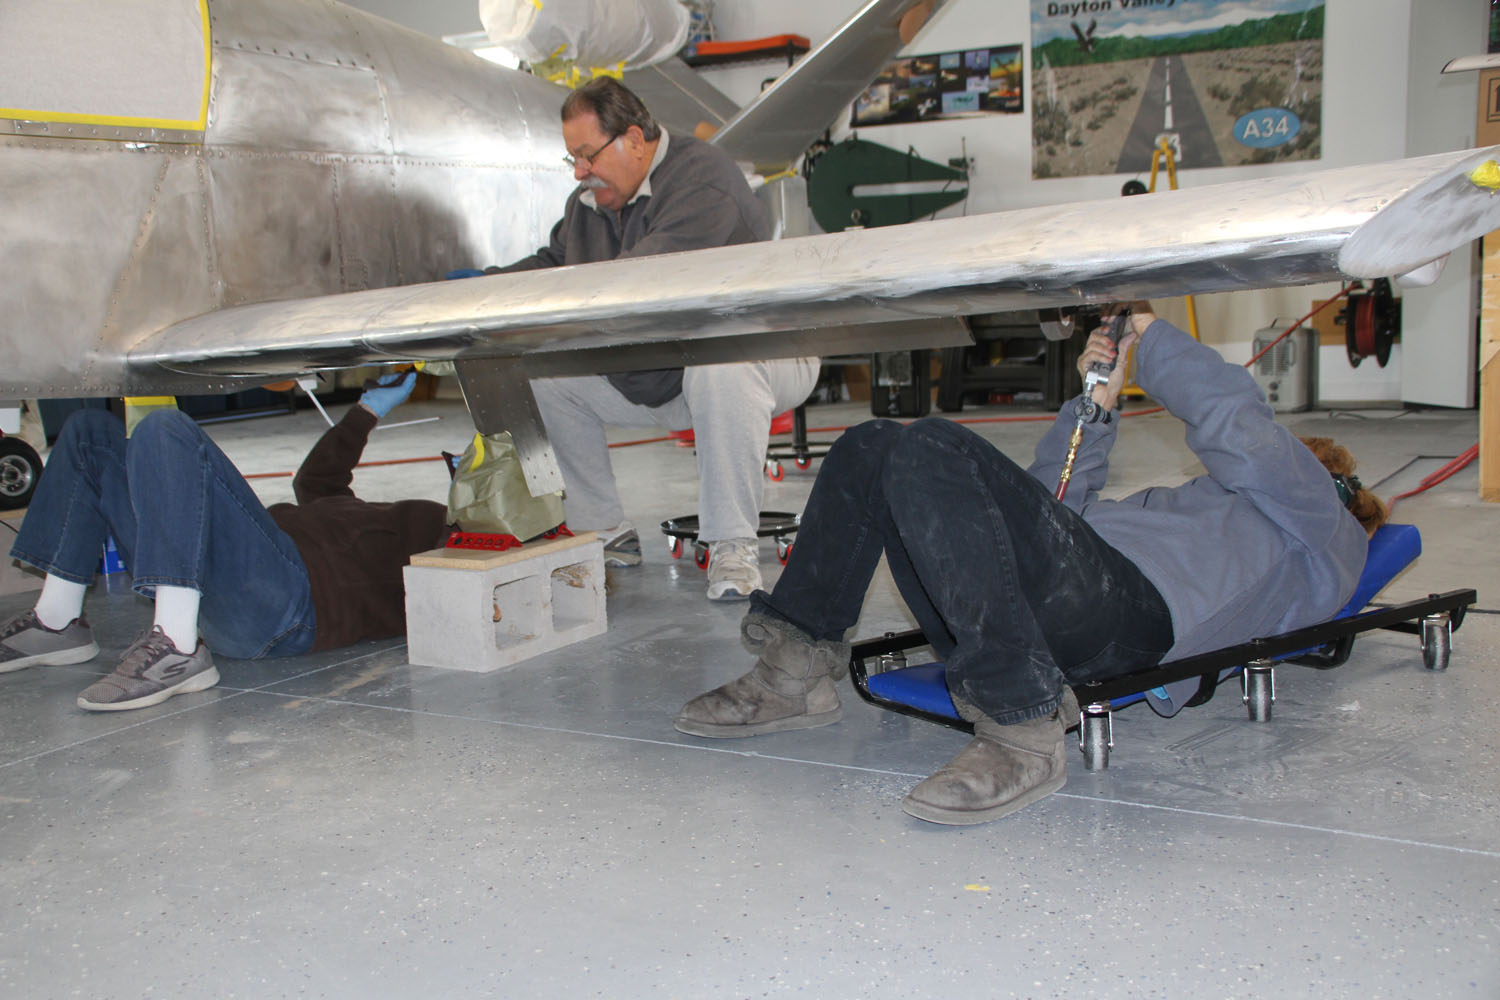 John Stahr wipes down the entire plane to remove the aluminum and Scotchbrite dust.